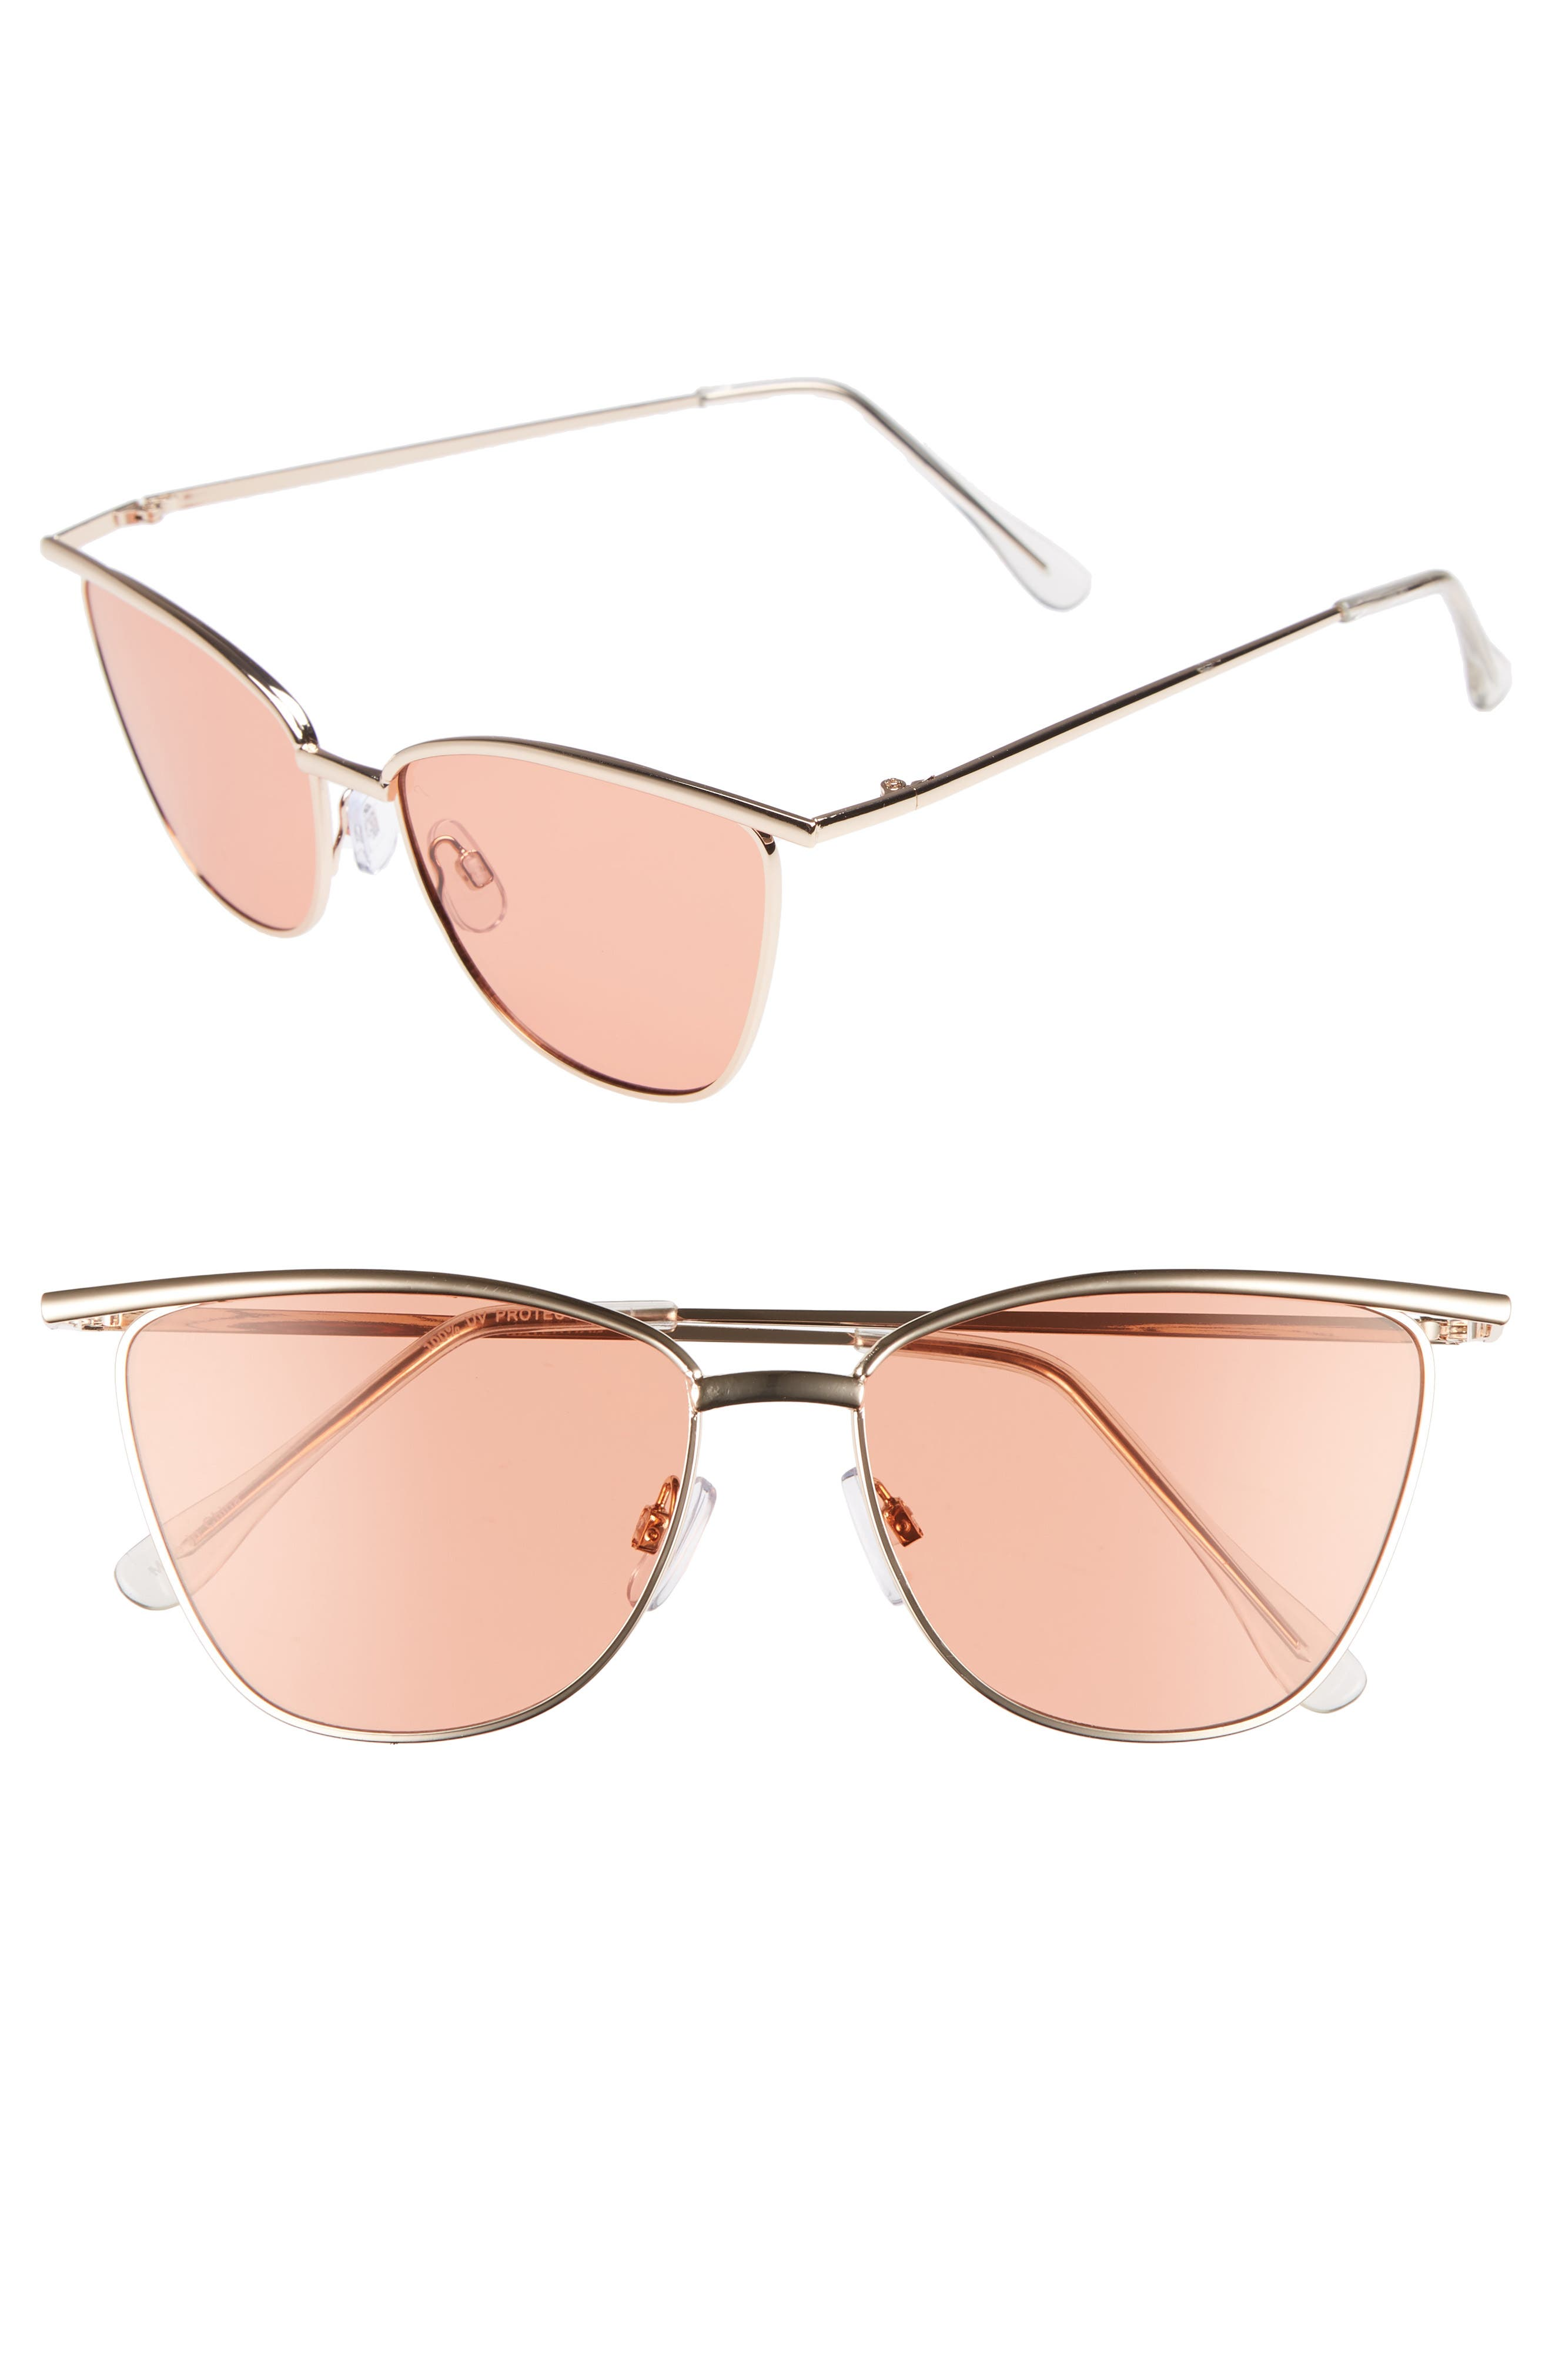 55mm Winged Cat Eye Sunglasses,                         Main,                         color, 710